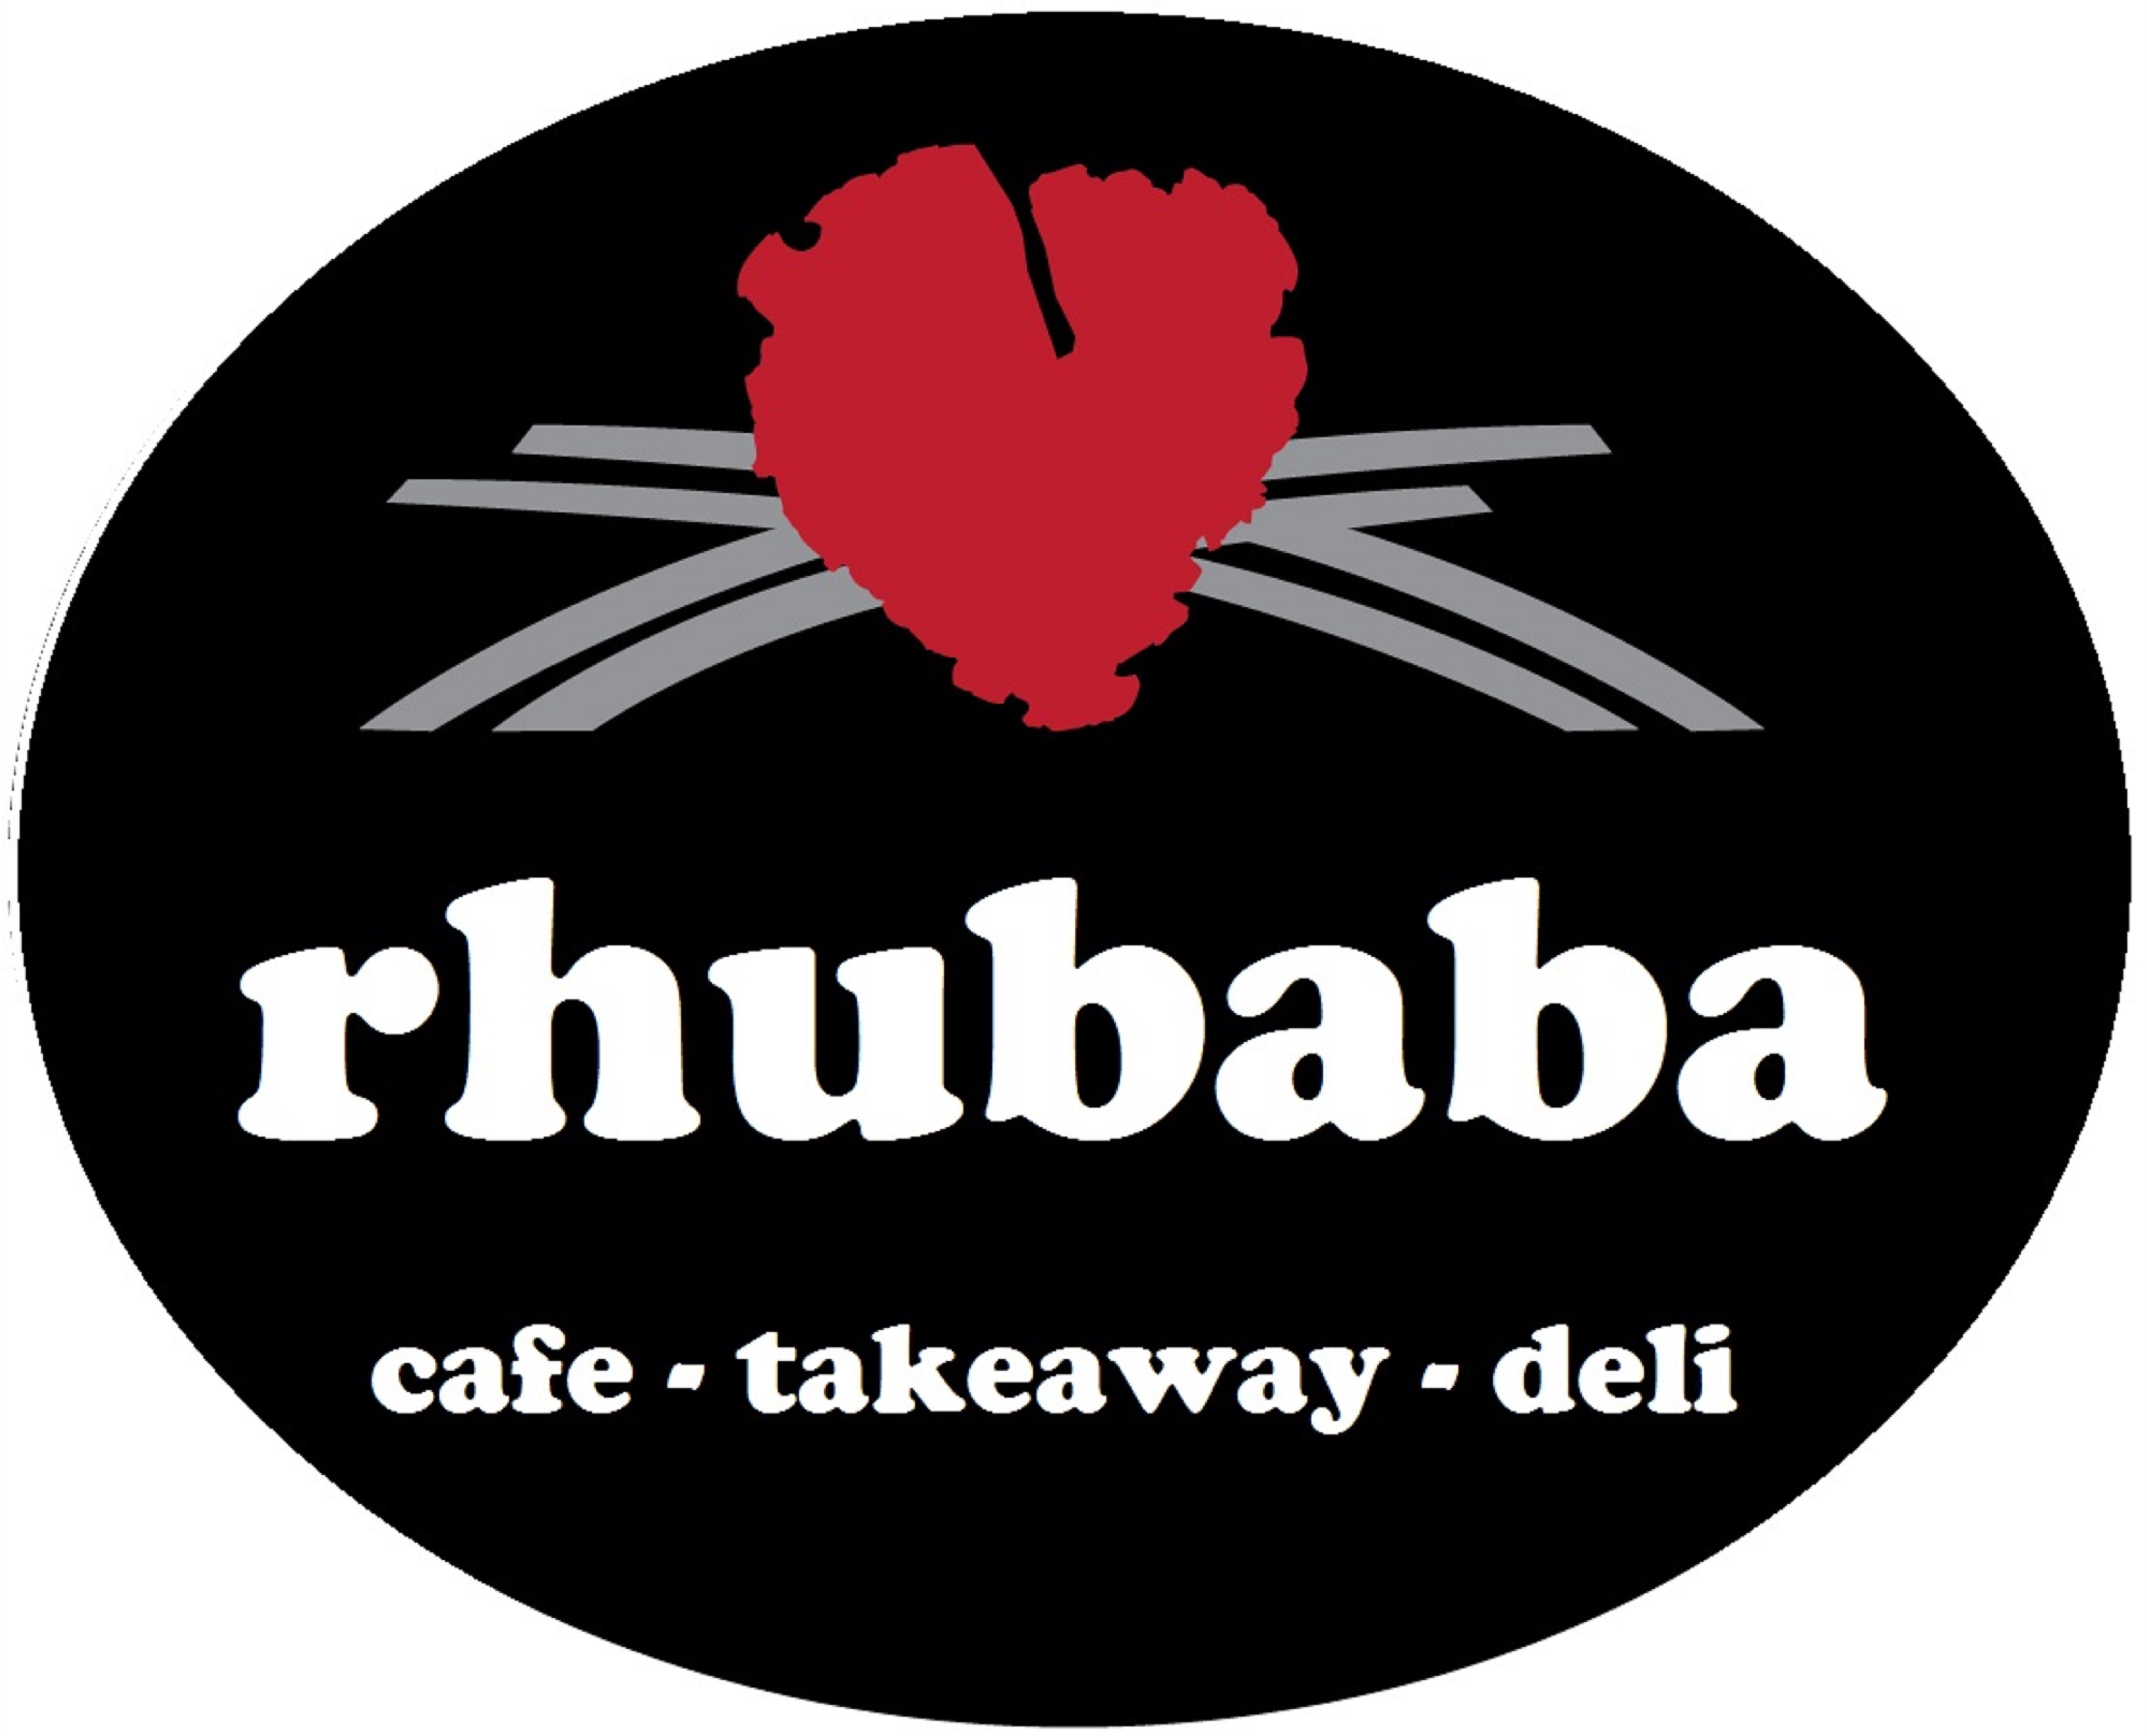 House of Rhubarb - Accommodation Perth